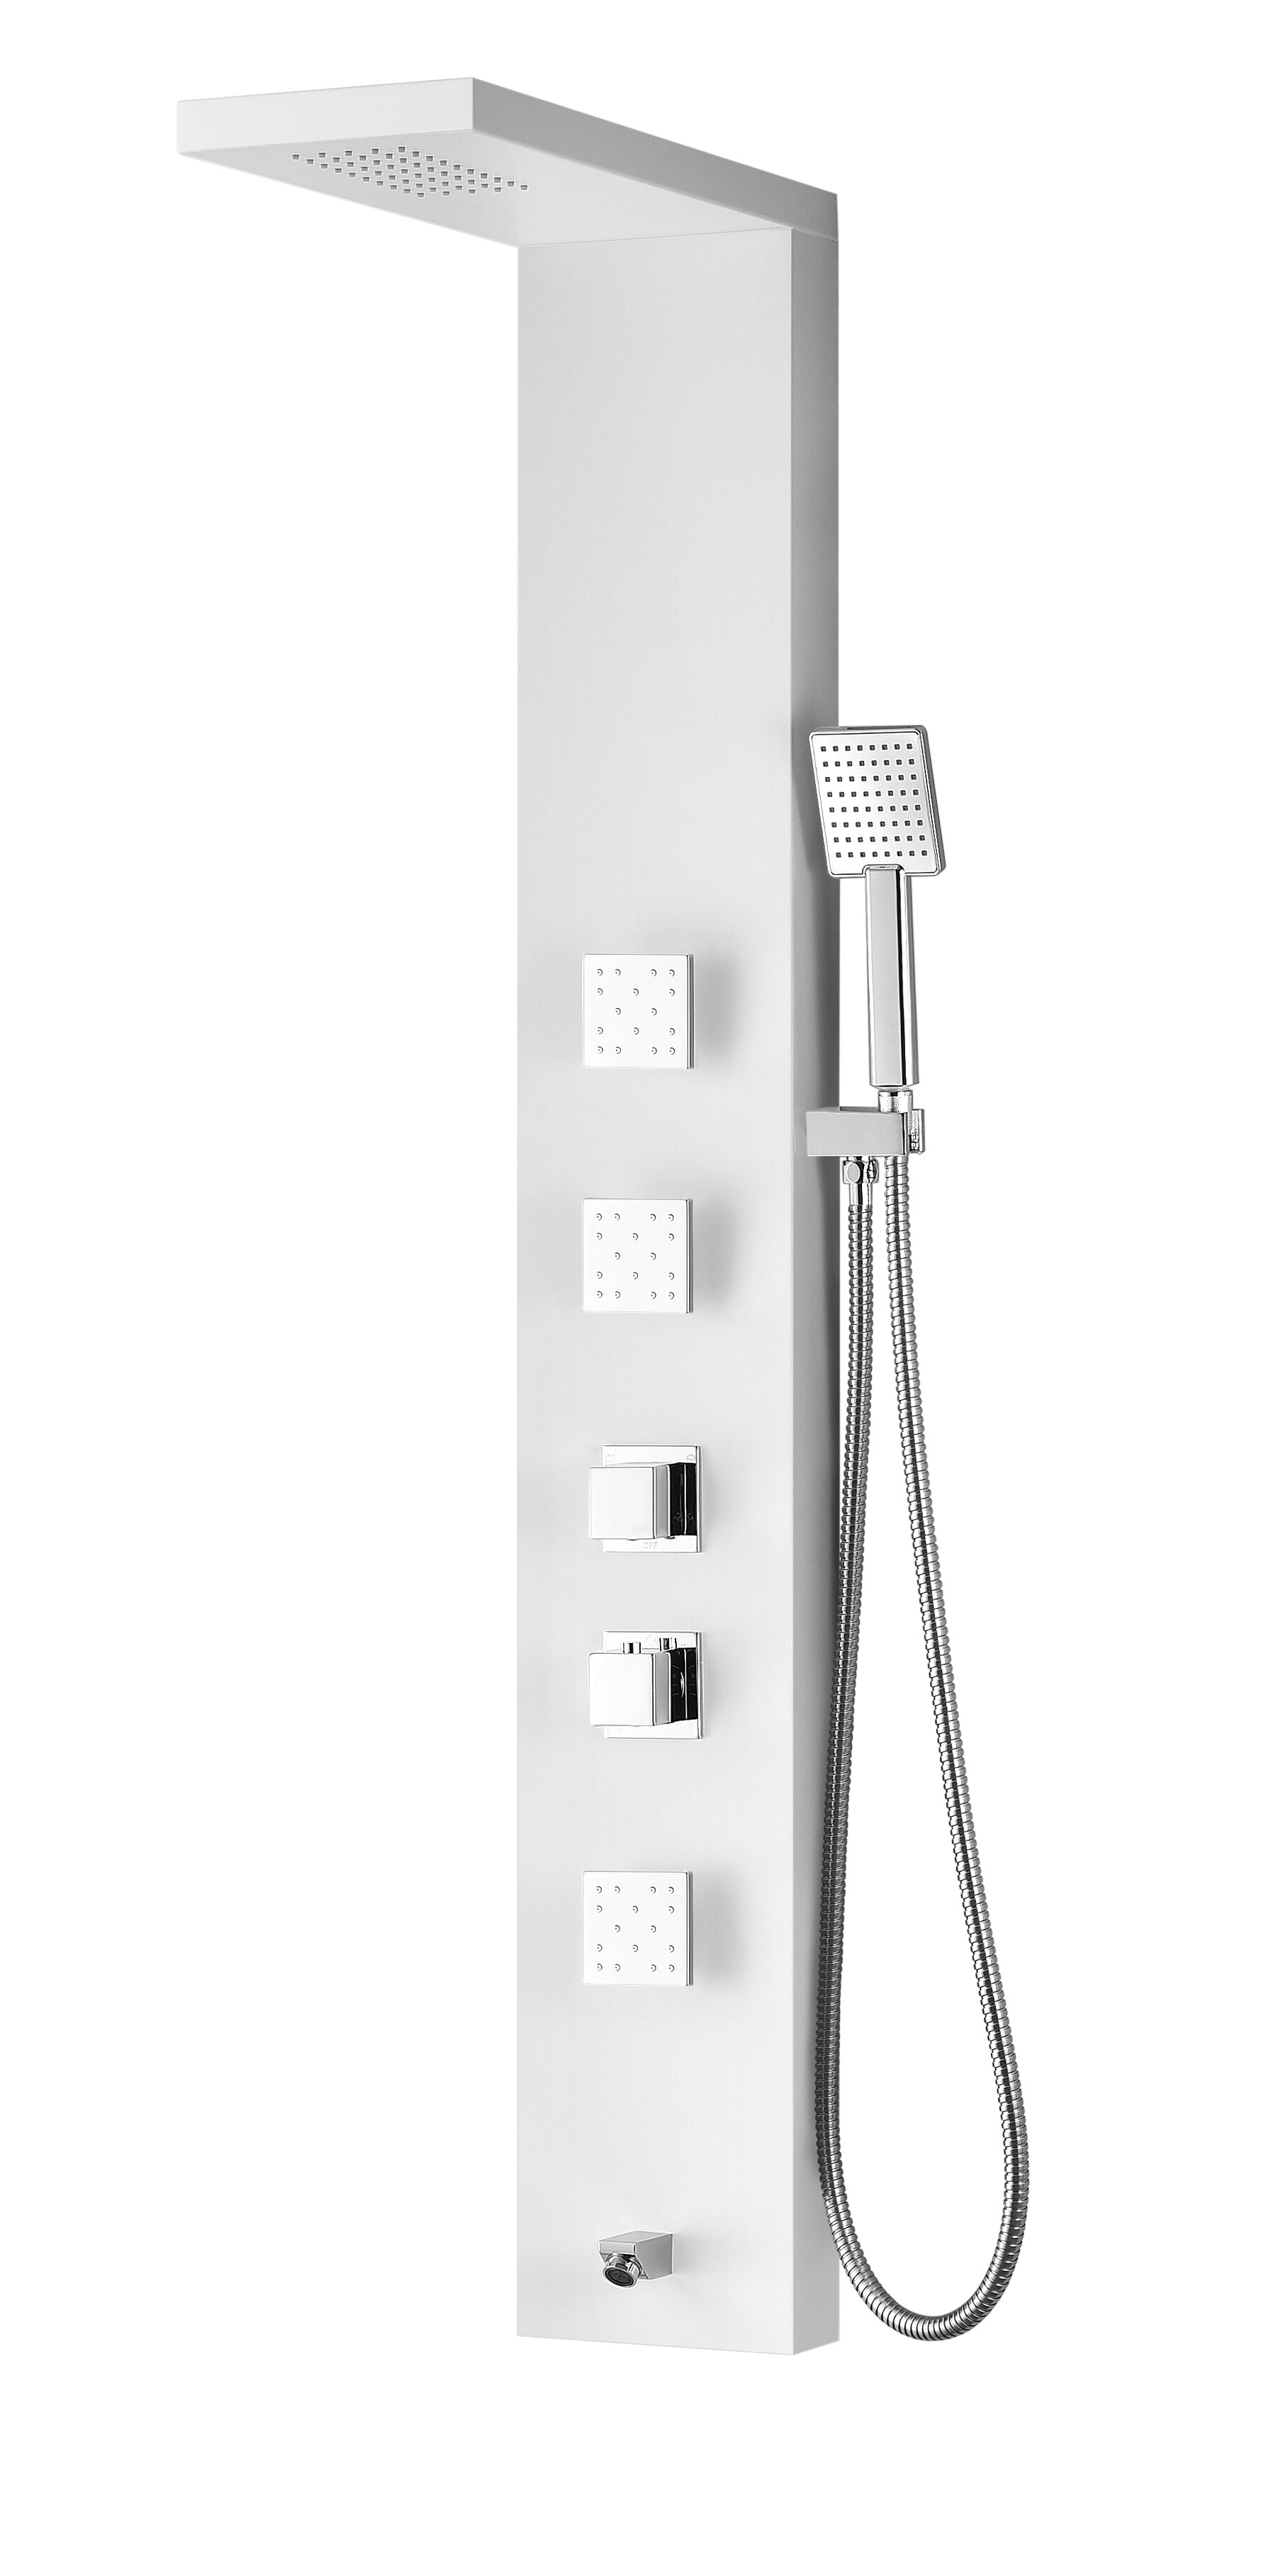 delta cafe systems shower designs pathos system installation com